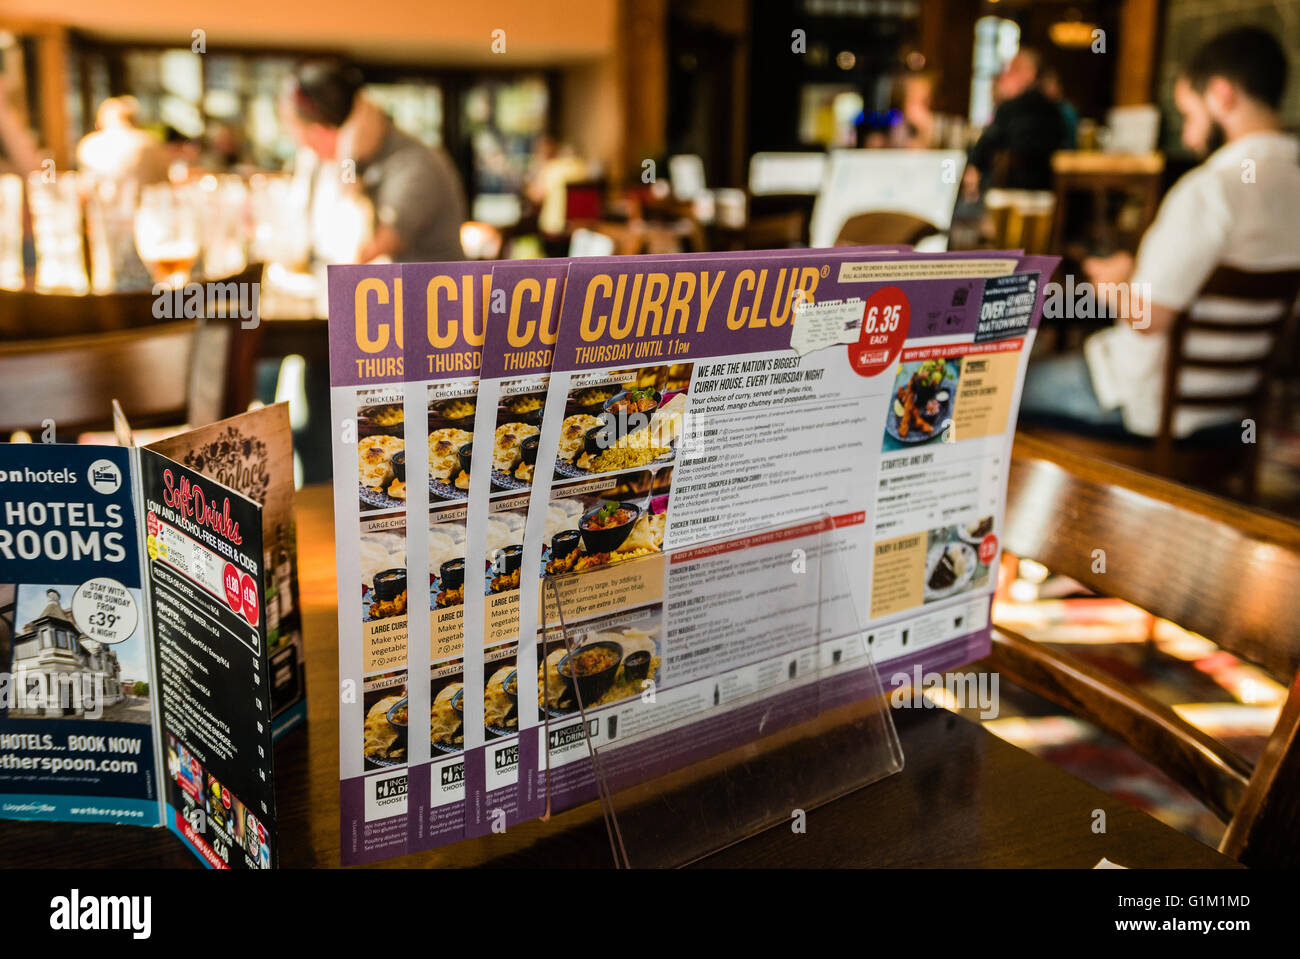 Curry Club menu en una tabla en un Wetherspoon's pub/restaurante, disponible cada jueves. Imagen De Stock